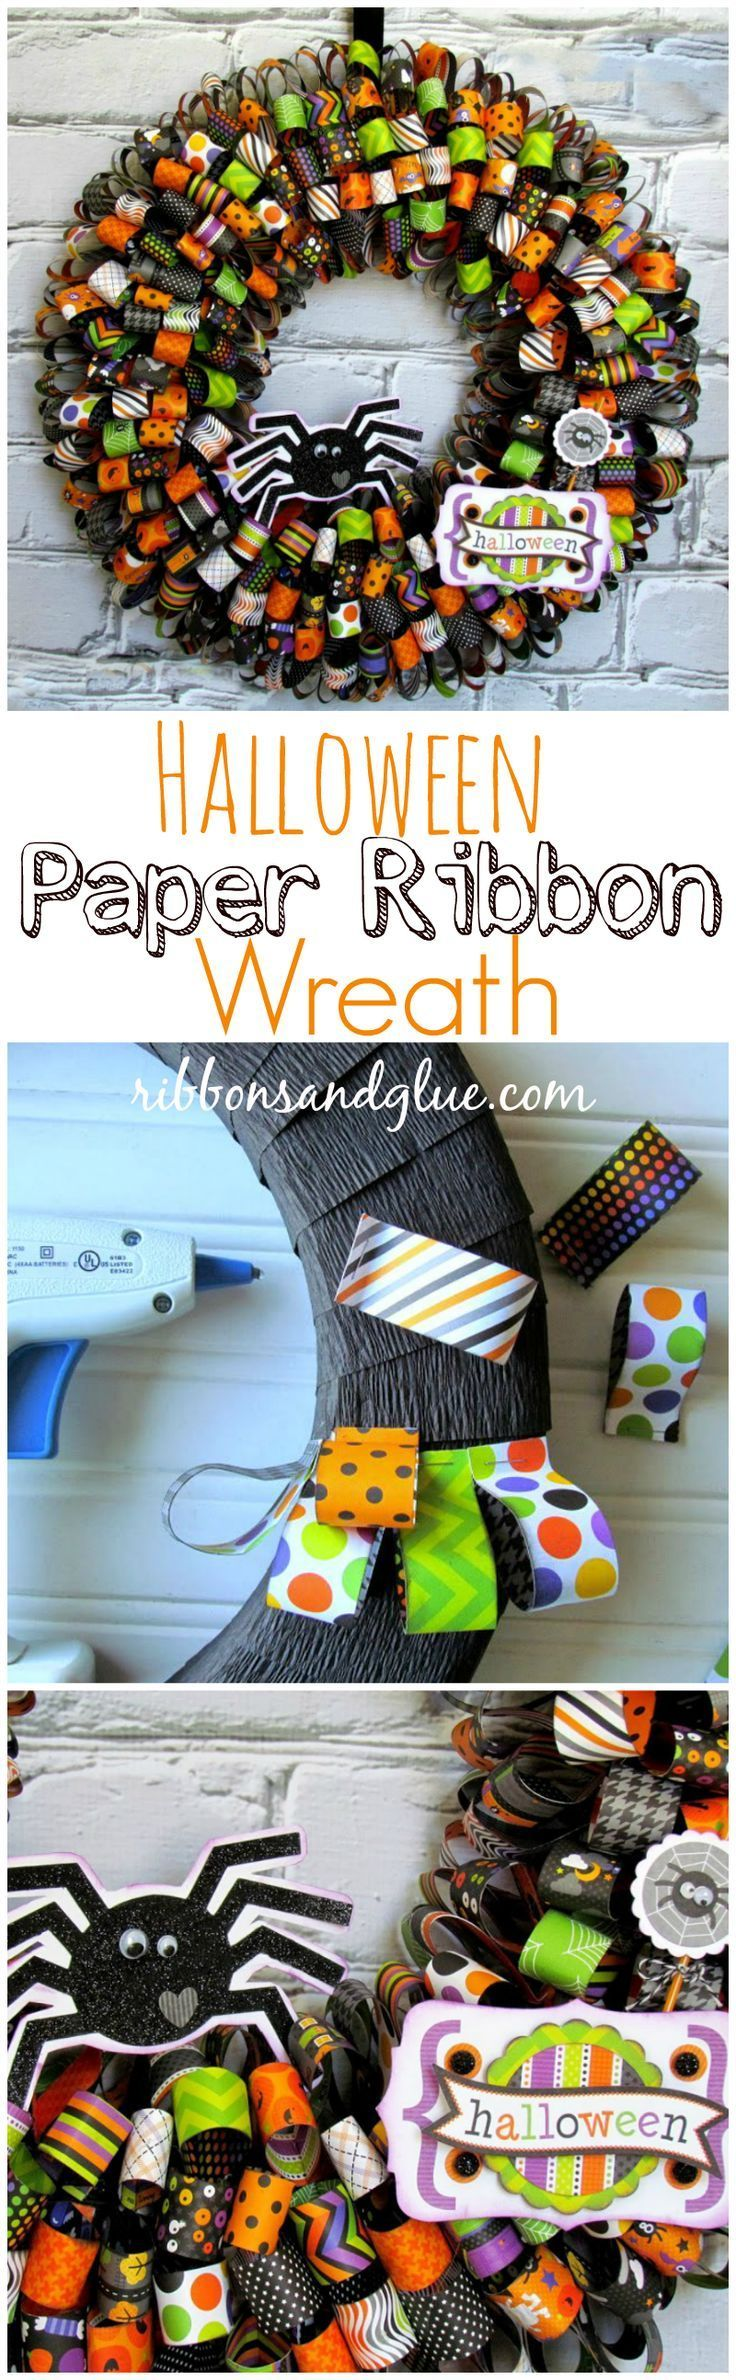 All you need to make this easy Halloween Paper Ribbon Wreath is Halloween paper, hot glue and a foam wreath.  Such a creative way to make a big Halloween statement.